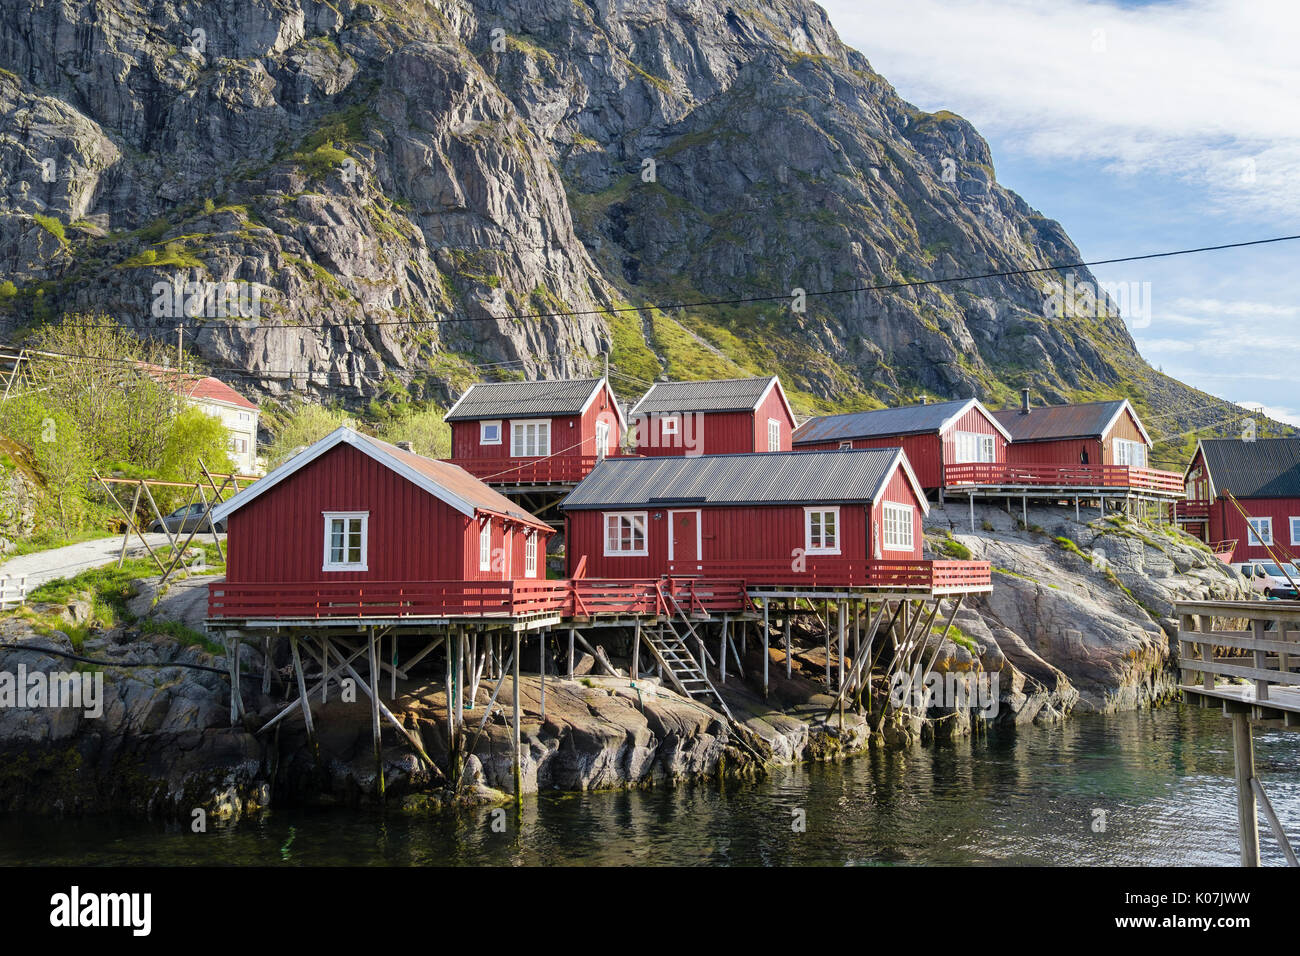 Red wooden rorbus fishermen's huts and buildings on stilts by sea in fishing village of Å, Moskenes, Moskenesøya Island, Lofoten Islands, Norway - Stock Image